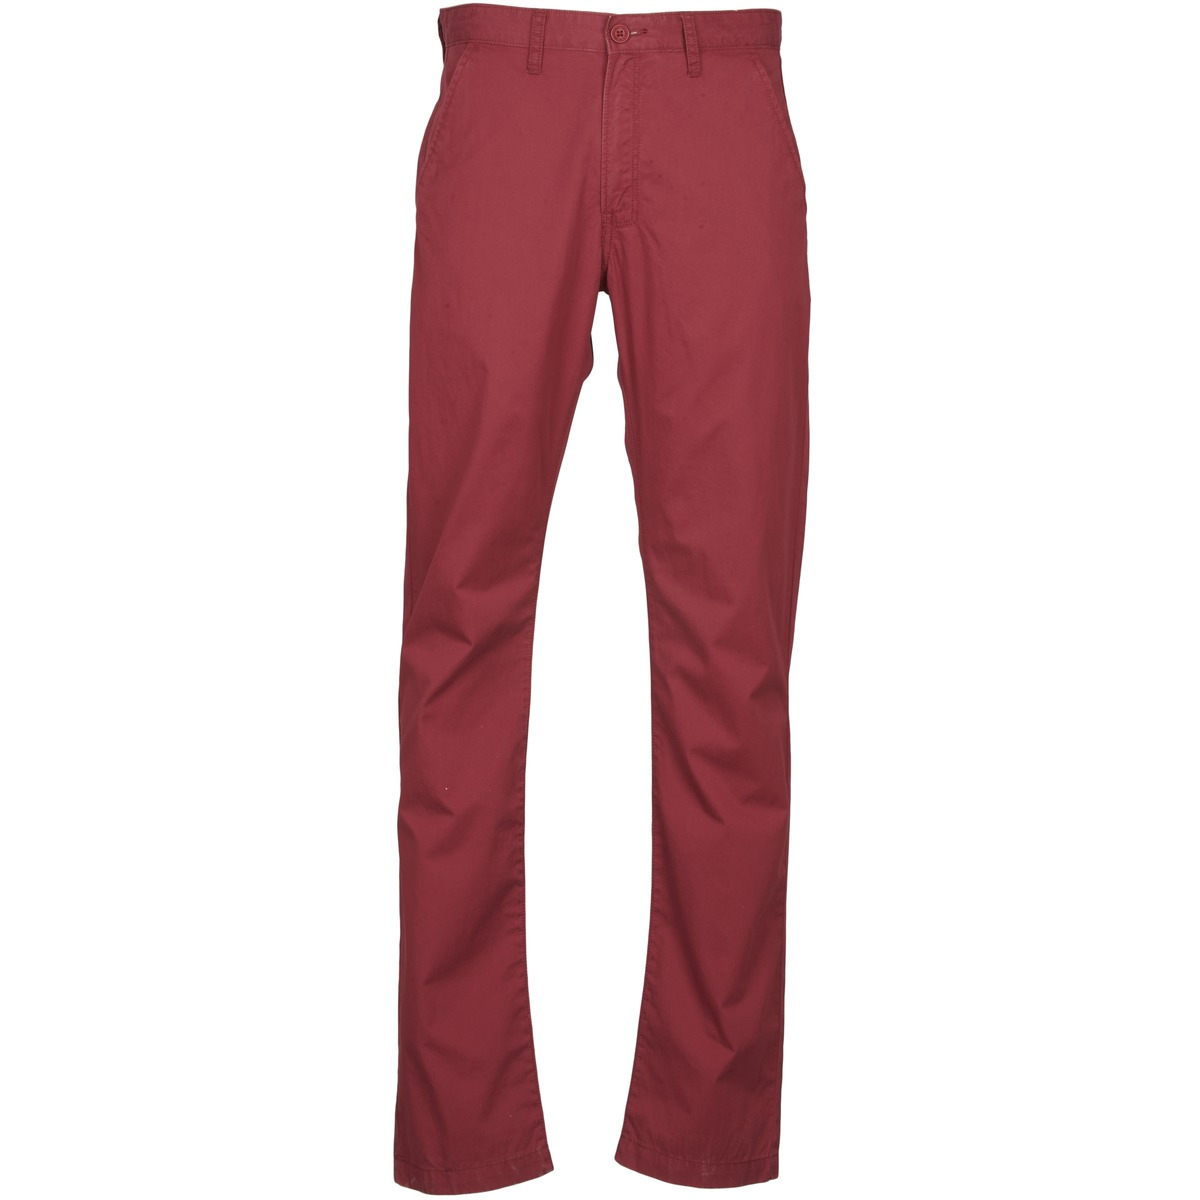 Lee CHINO OXBLOOD Rouge